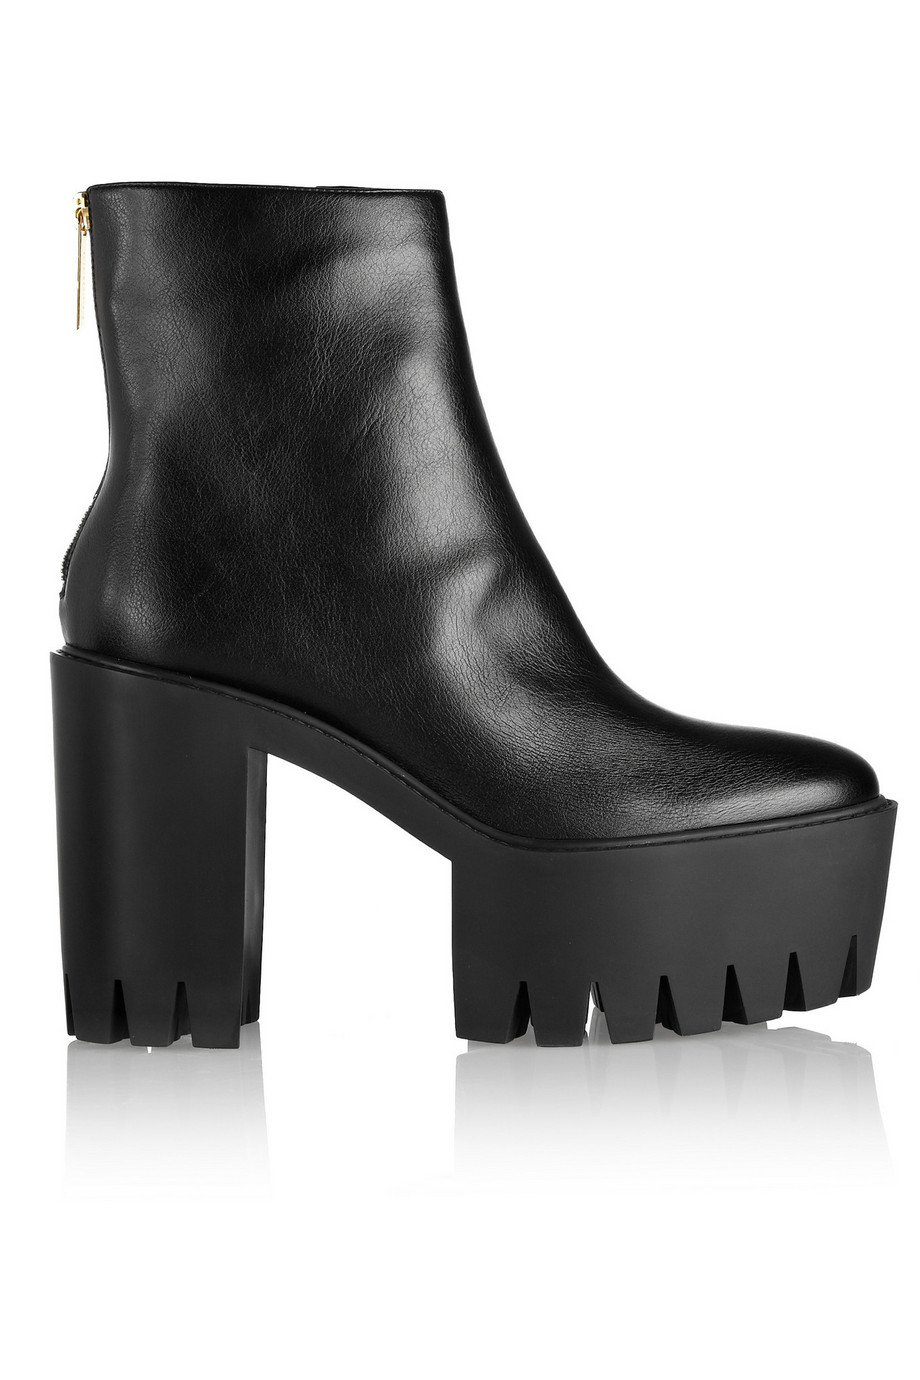 1e1b0ce8cfd8 Stella McCartney towers in platform boots she steps out in central ...